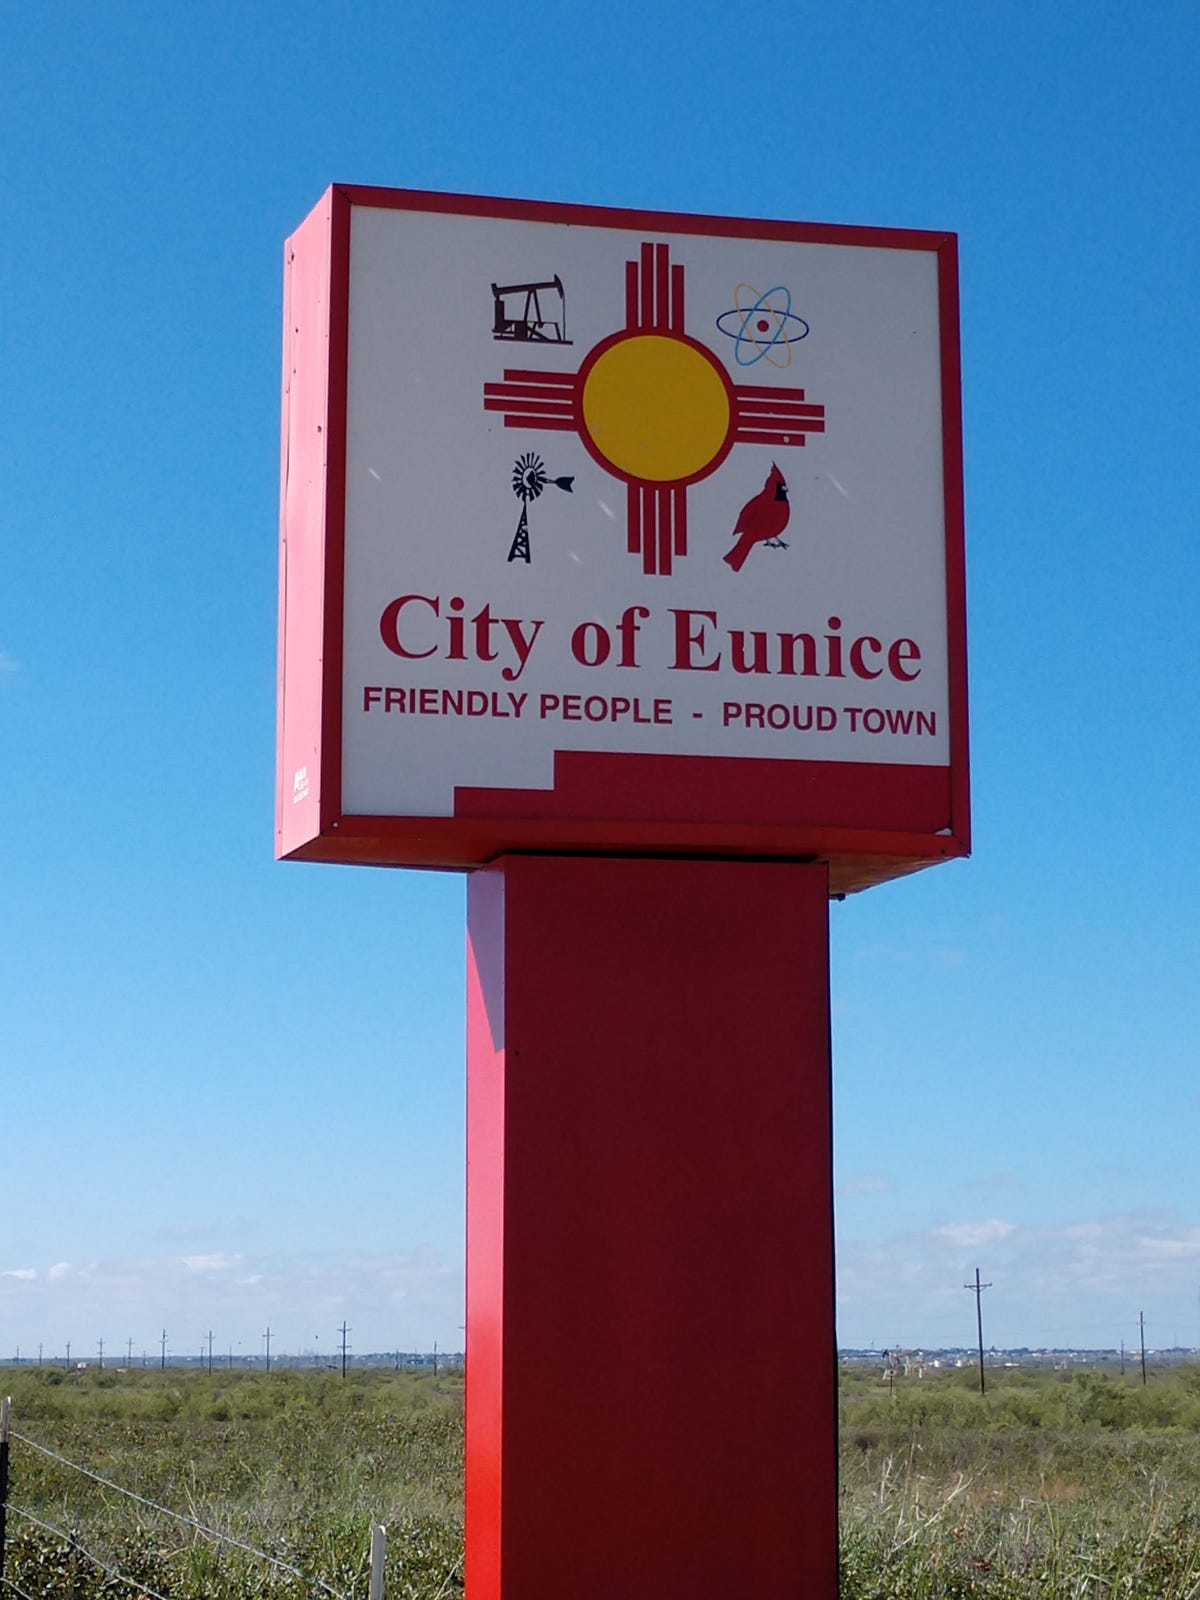 The town of Eunice, NM preserves hospitality despite oil boom